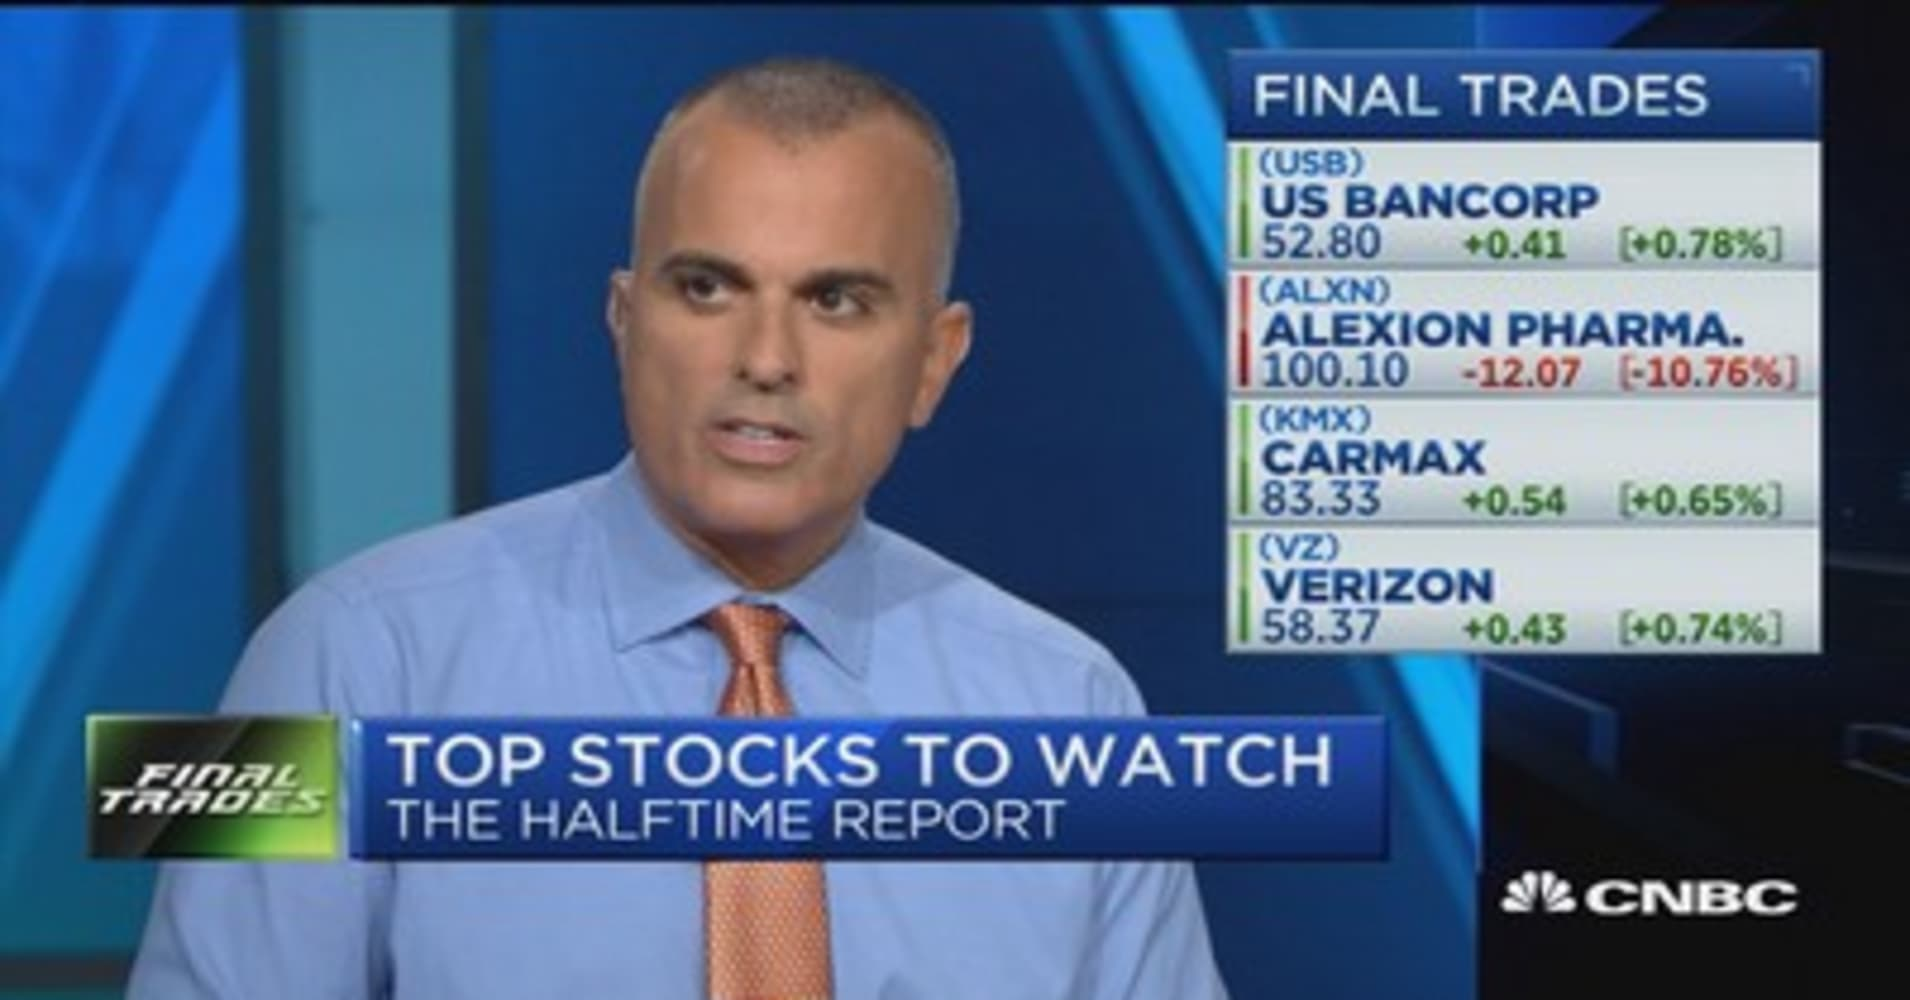 https://www cnbc com/video/2019/09/02/eu-banks-must-invest